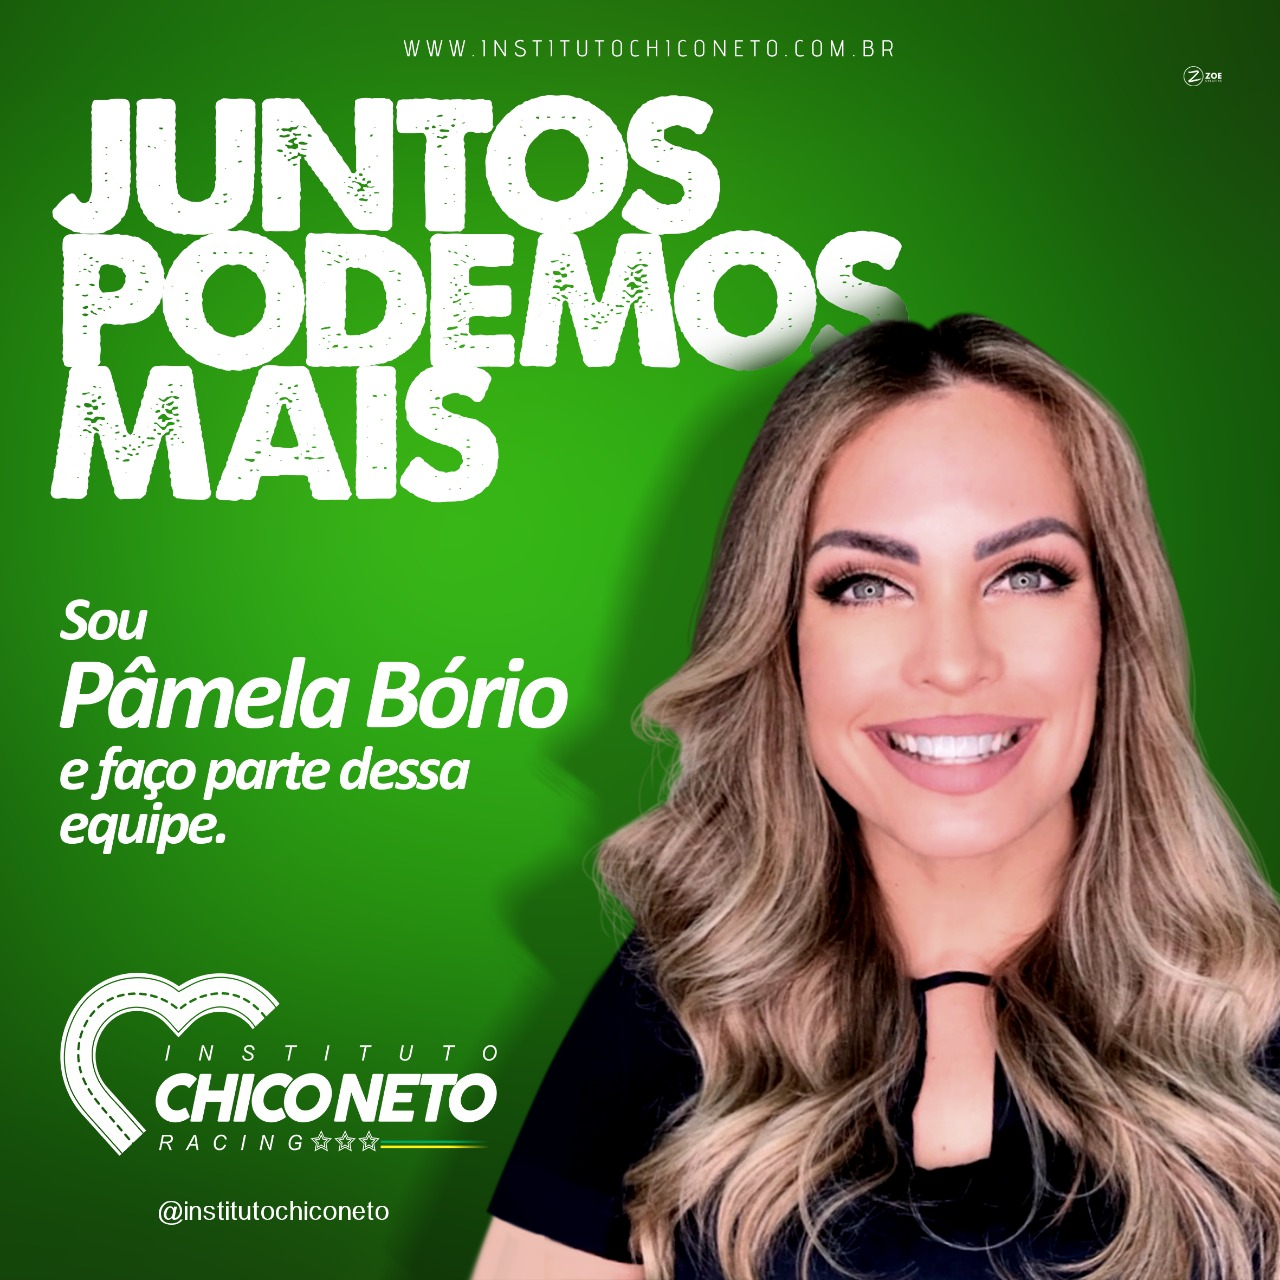 ESTA NO AR O PRIMEIRO PROGRAMA DO INSTITUTO CHICO NETO